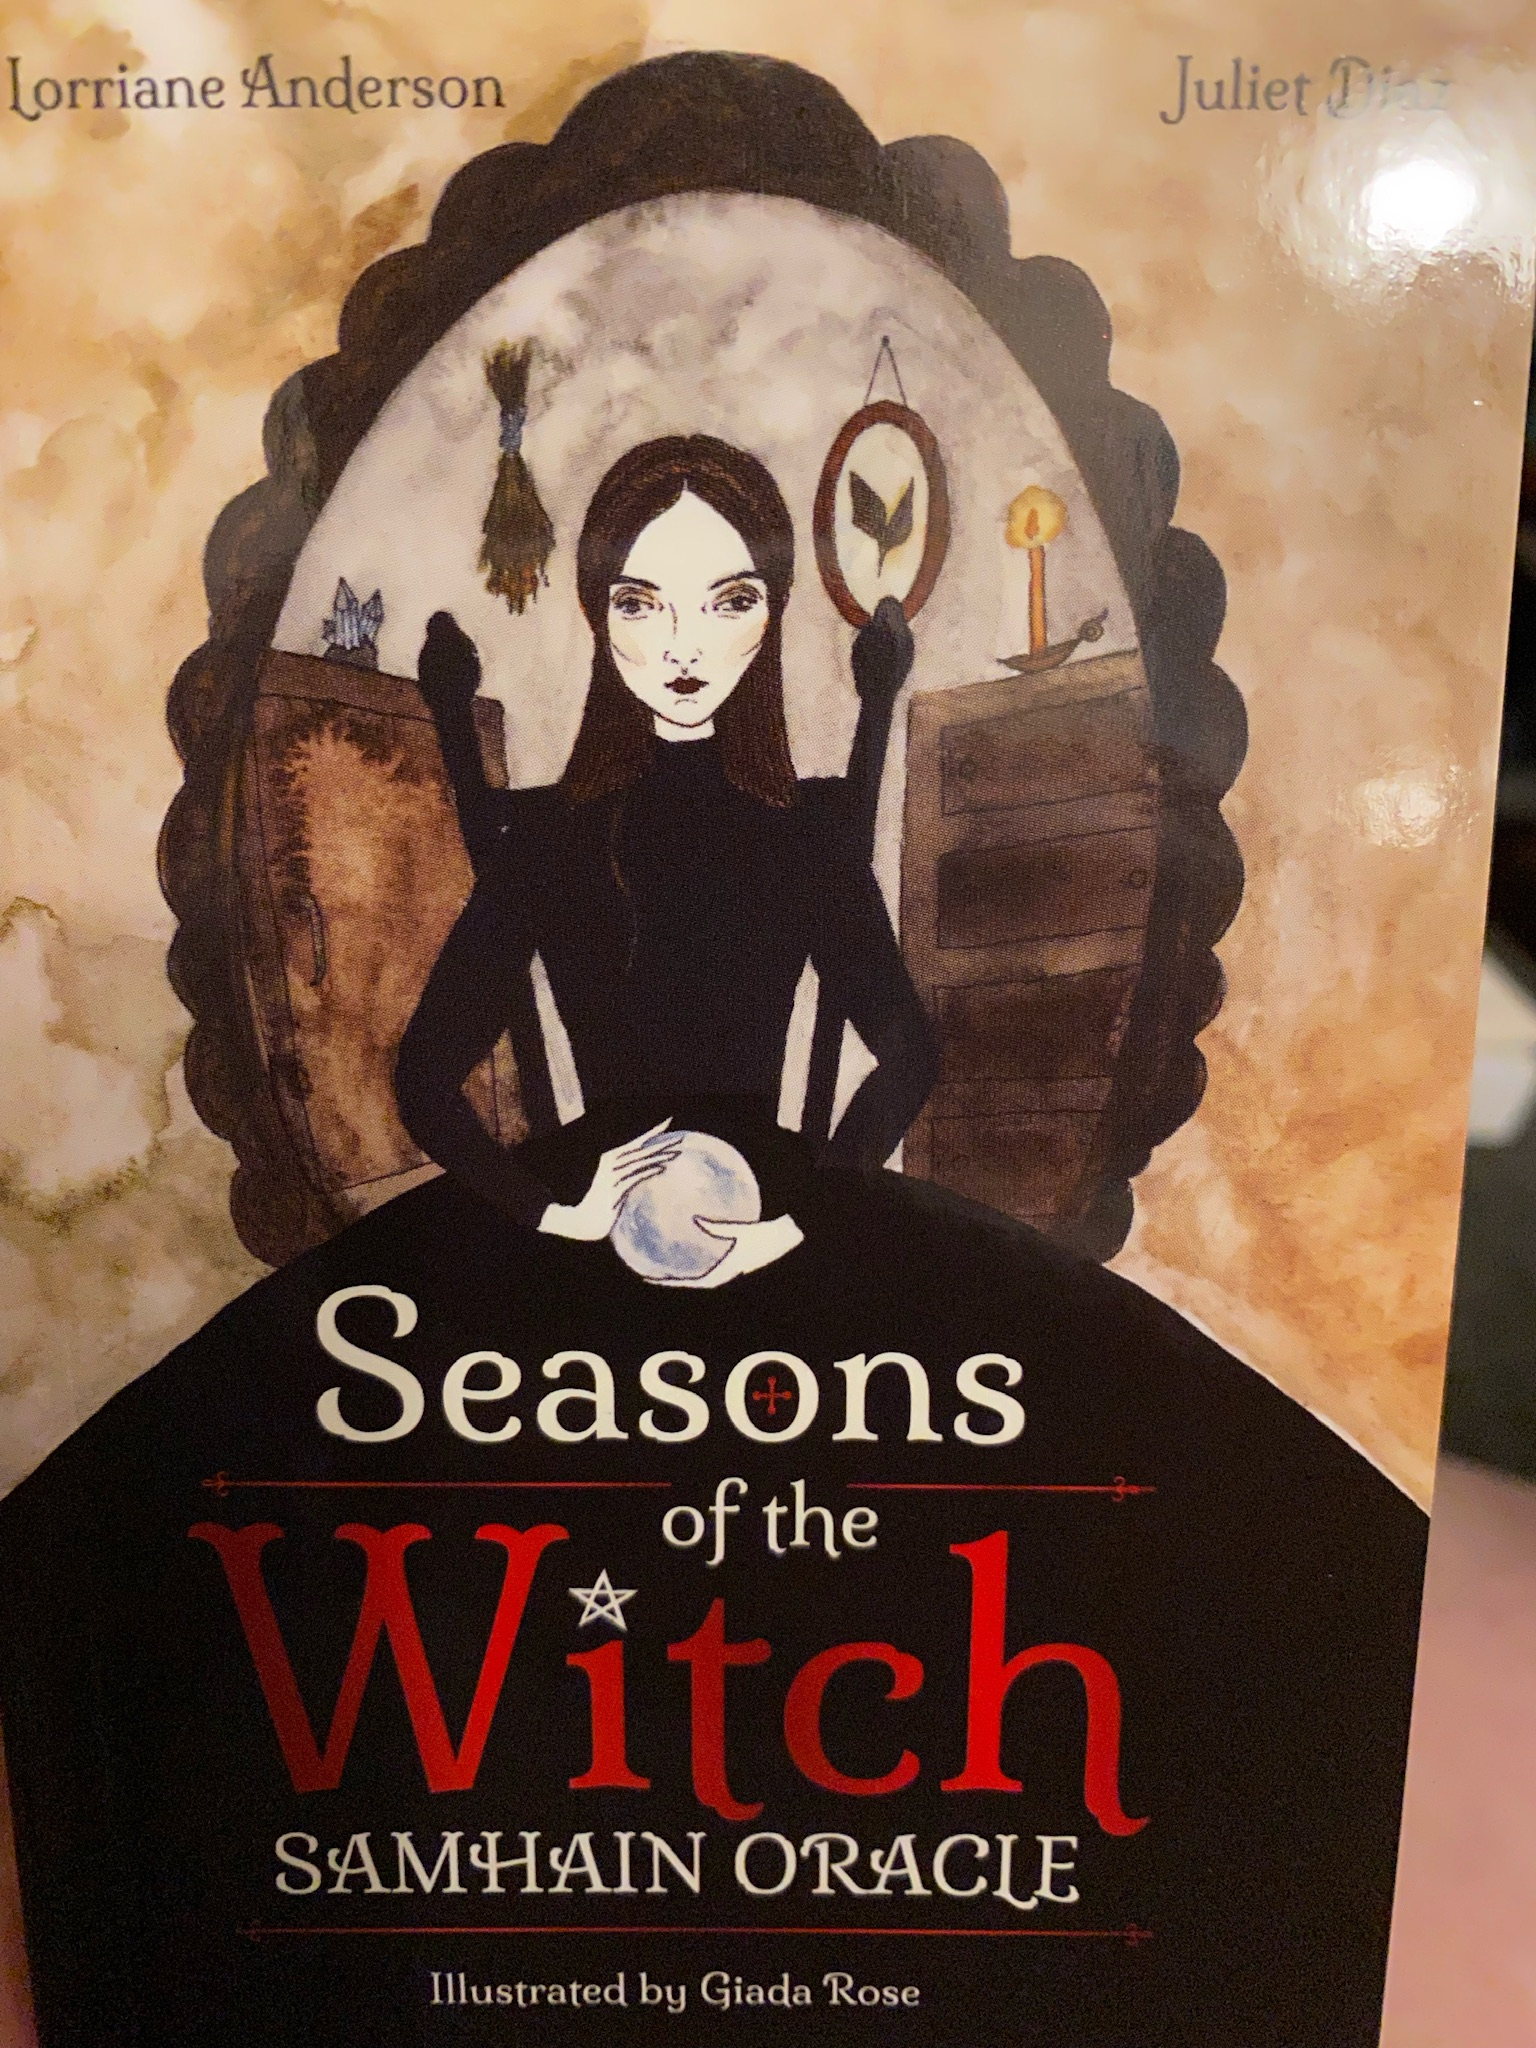 Seasons of the Witch – Samhain Oracle